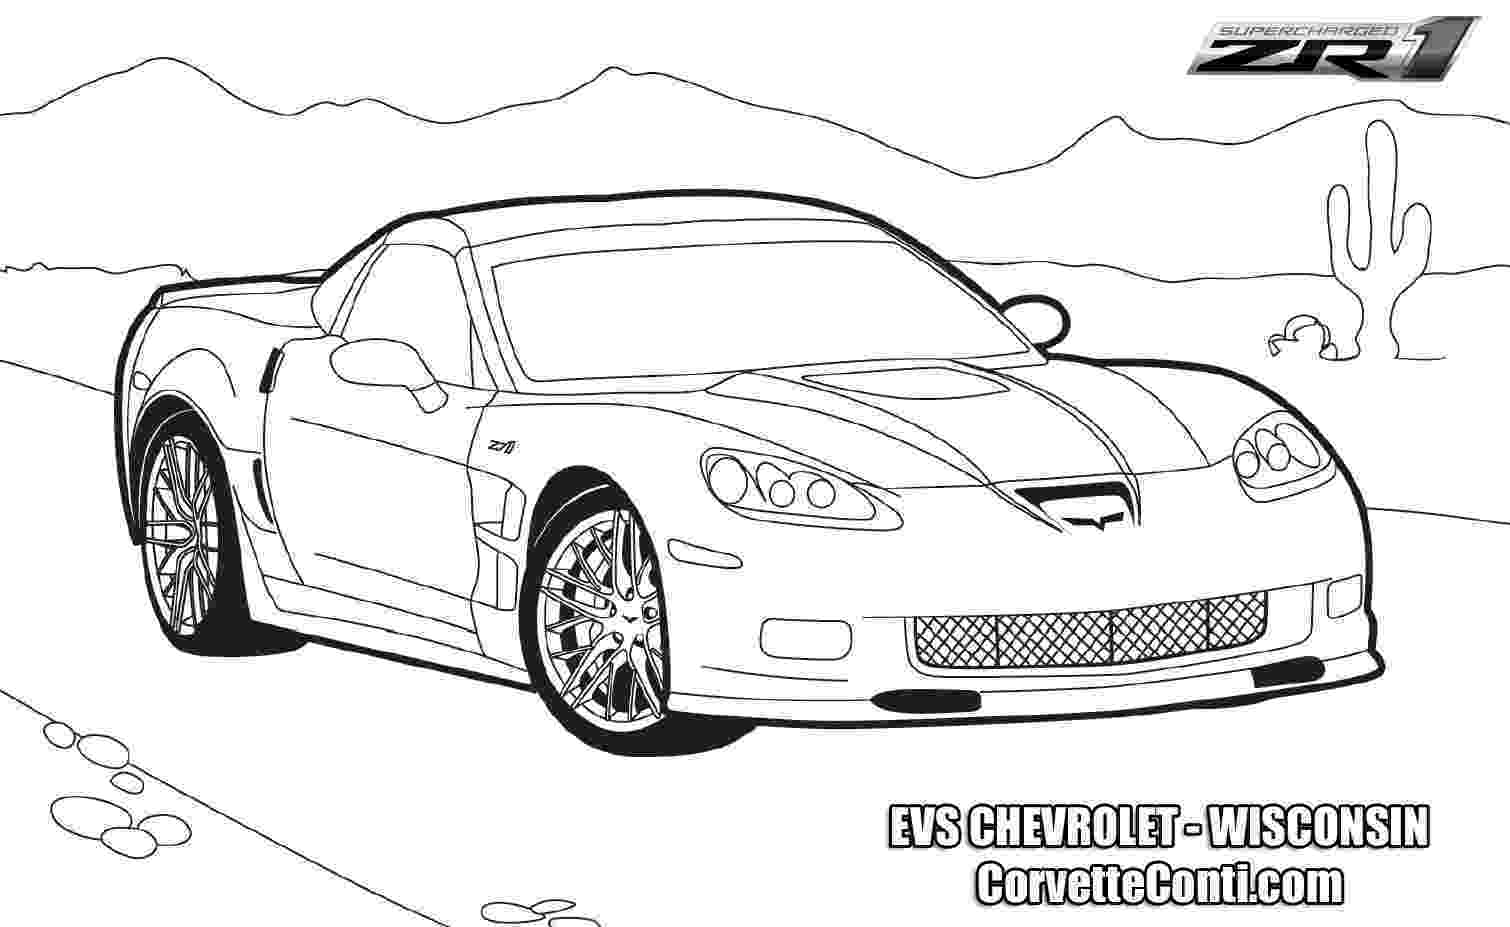 corvette coloring pages corvette coloring pages to download and print for free coloring corvette pages